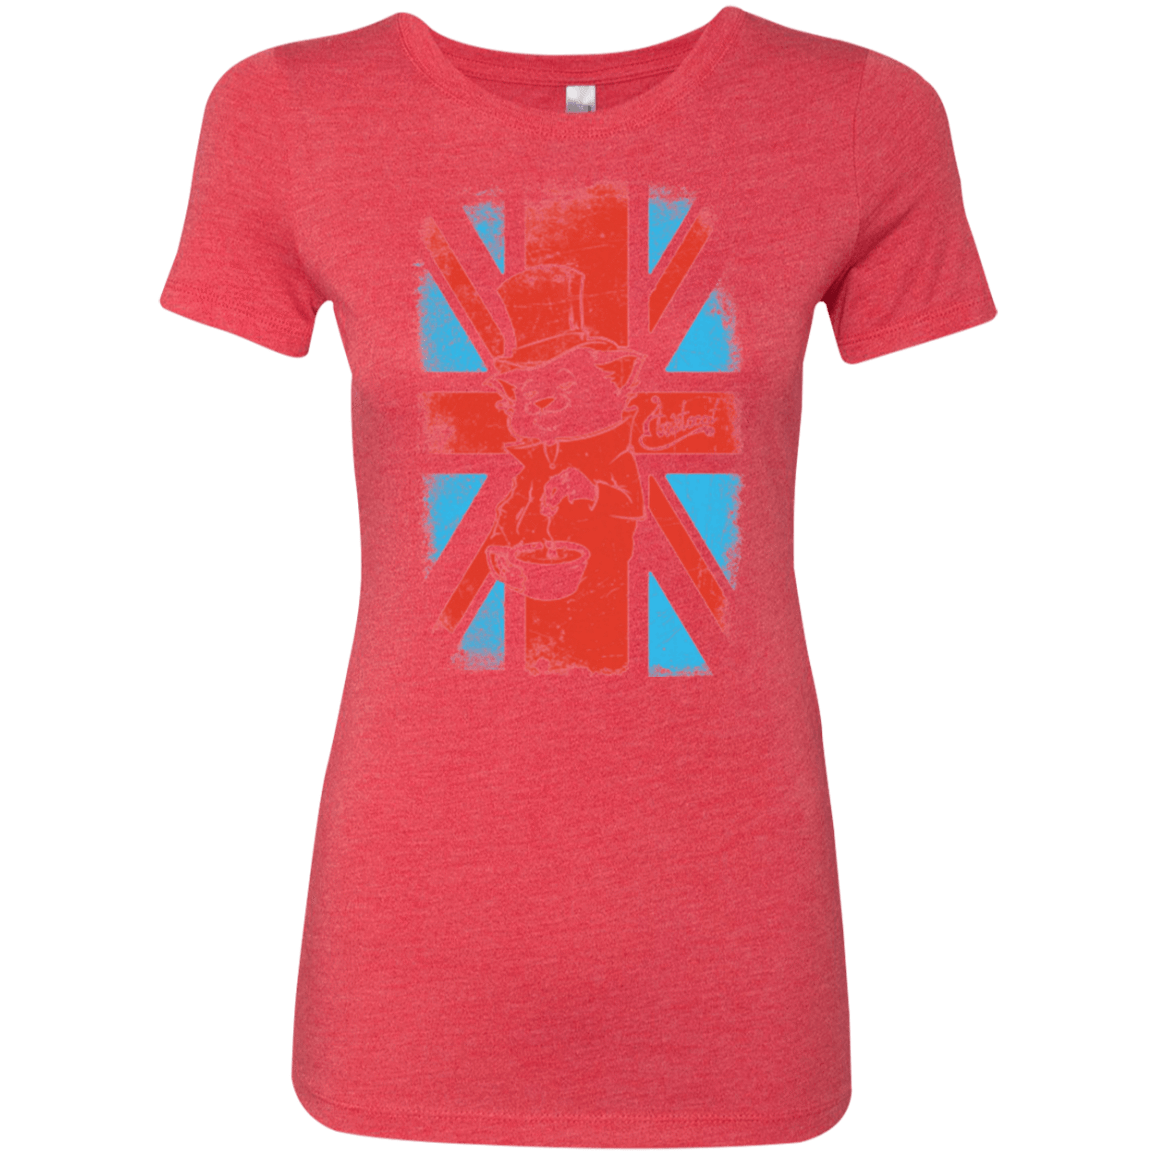 Aristocat Women's Triblend T-Shirt